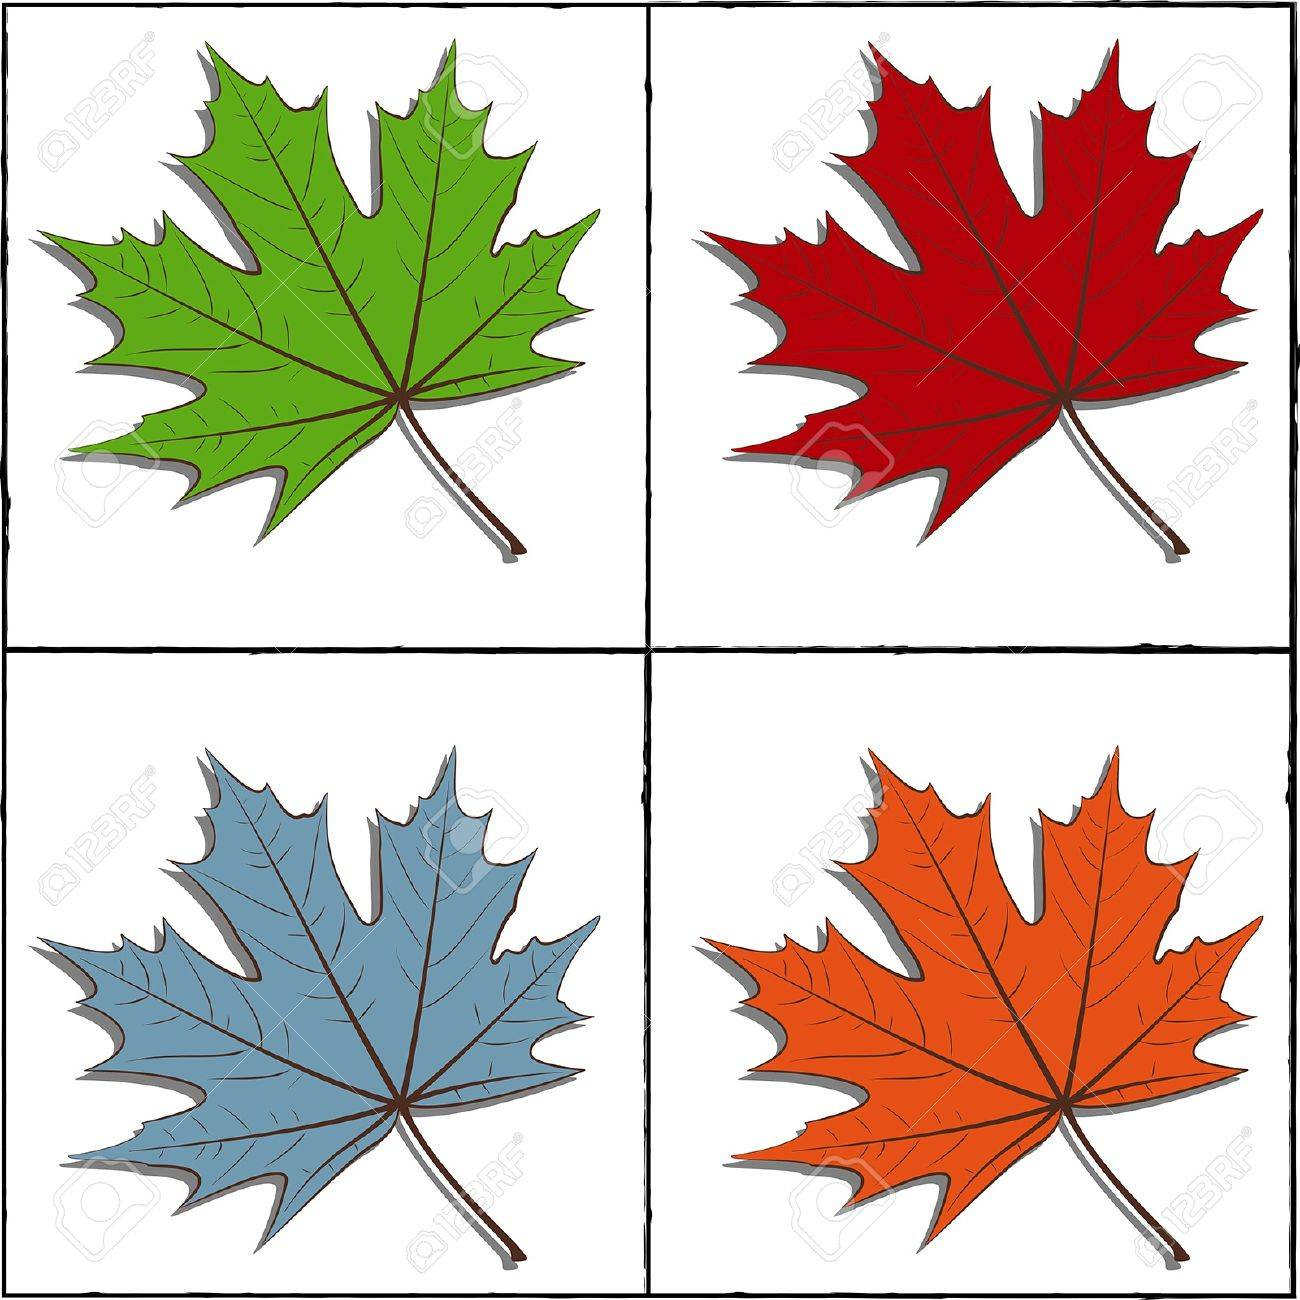 Maple Leafs for four seasons. In the frame. EPS10 vector. Stock Vector - 17667224